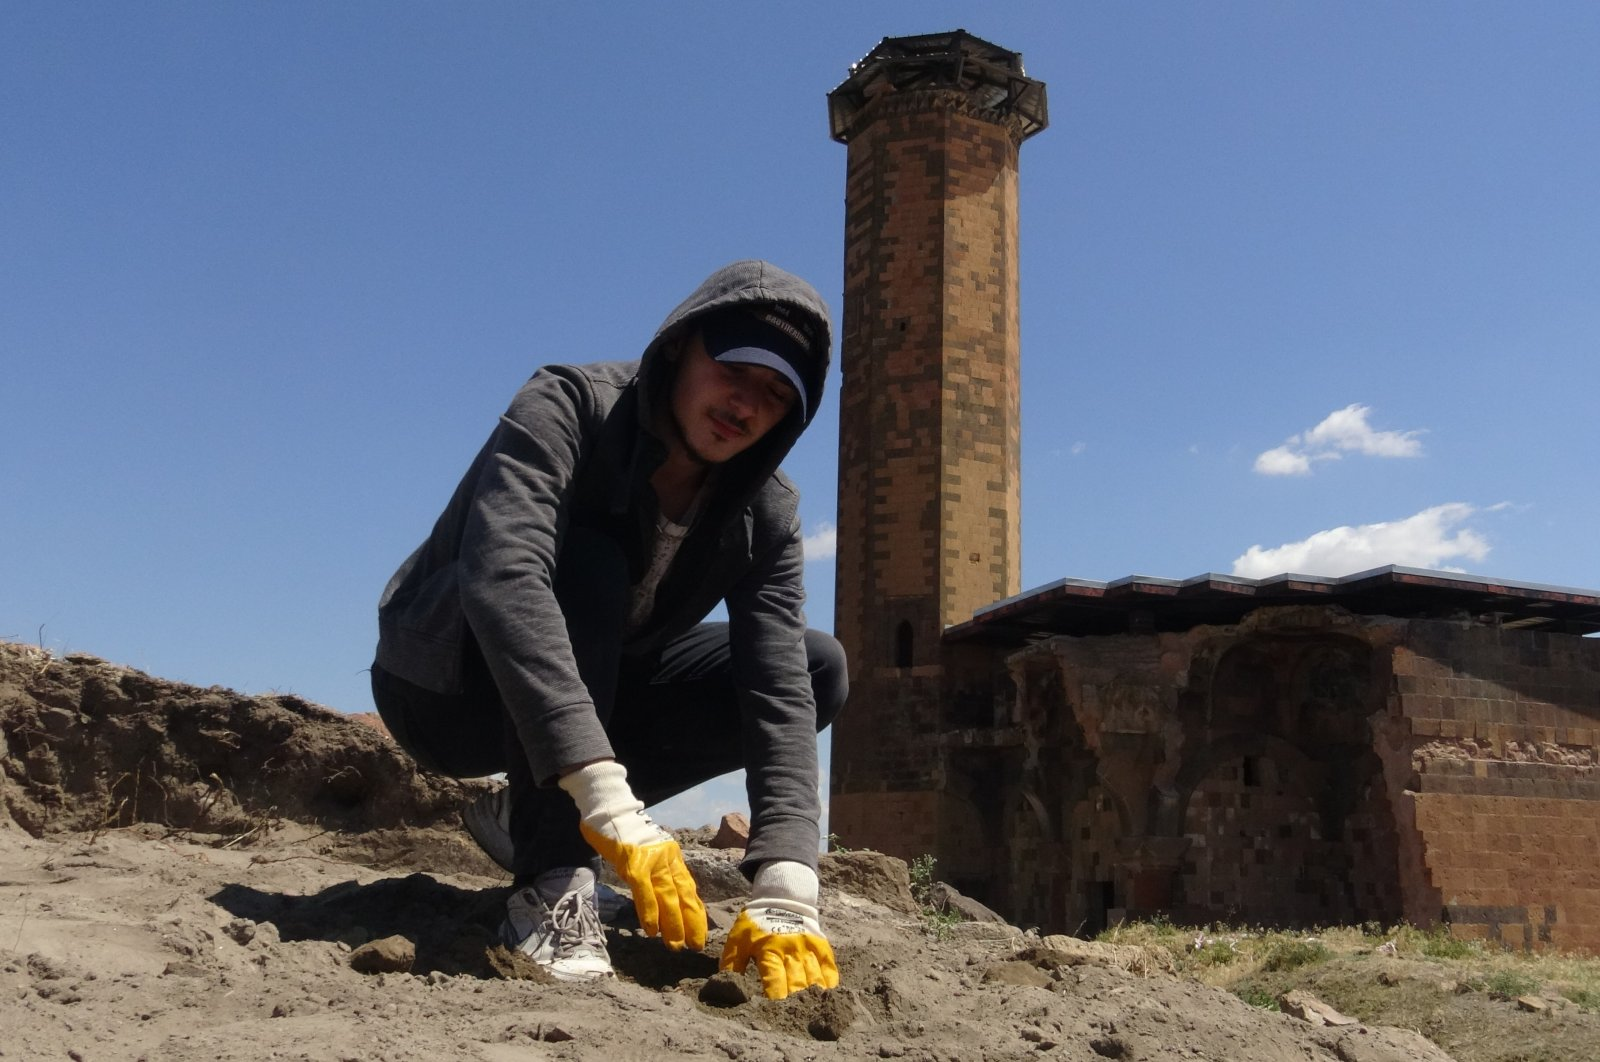 A young man is seen at the excavation site at Ebu'l Manuçehr Mosque, Kars, eastern Turkey.